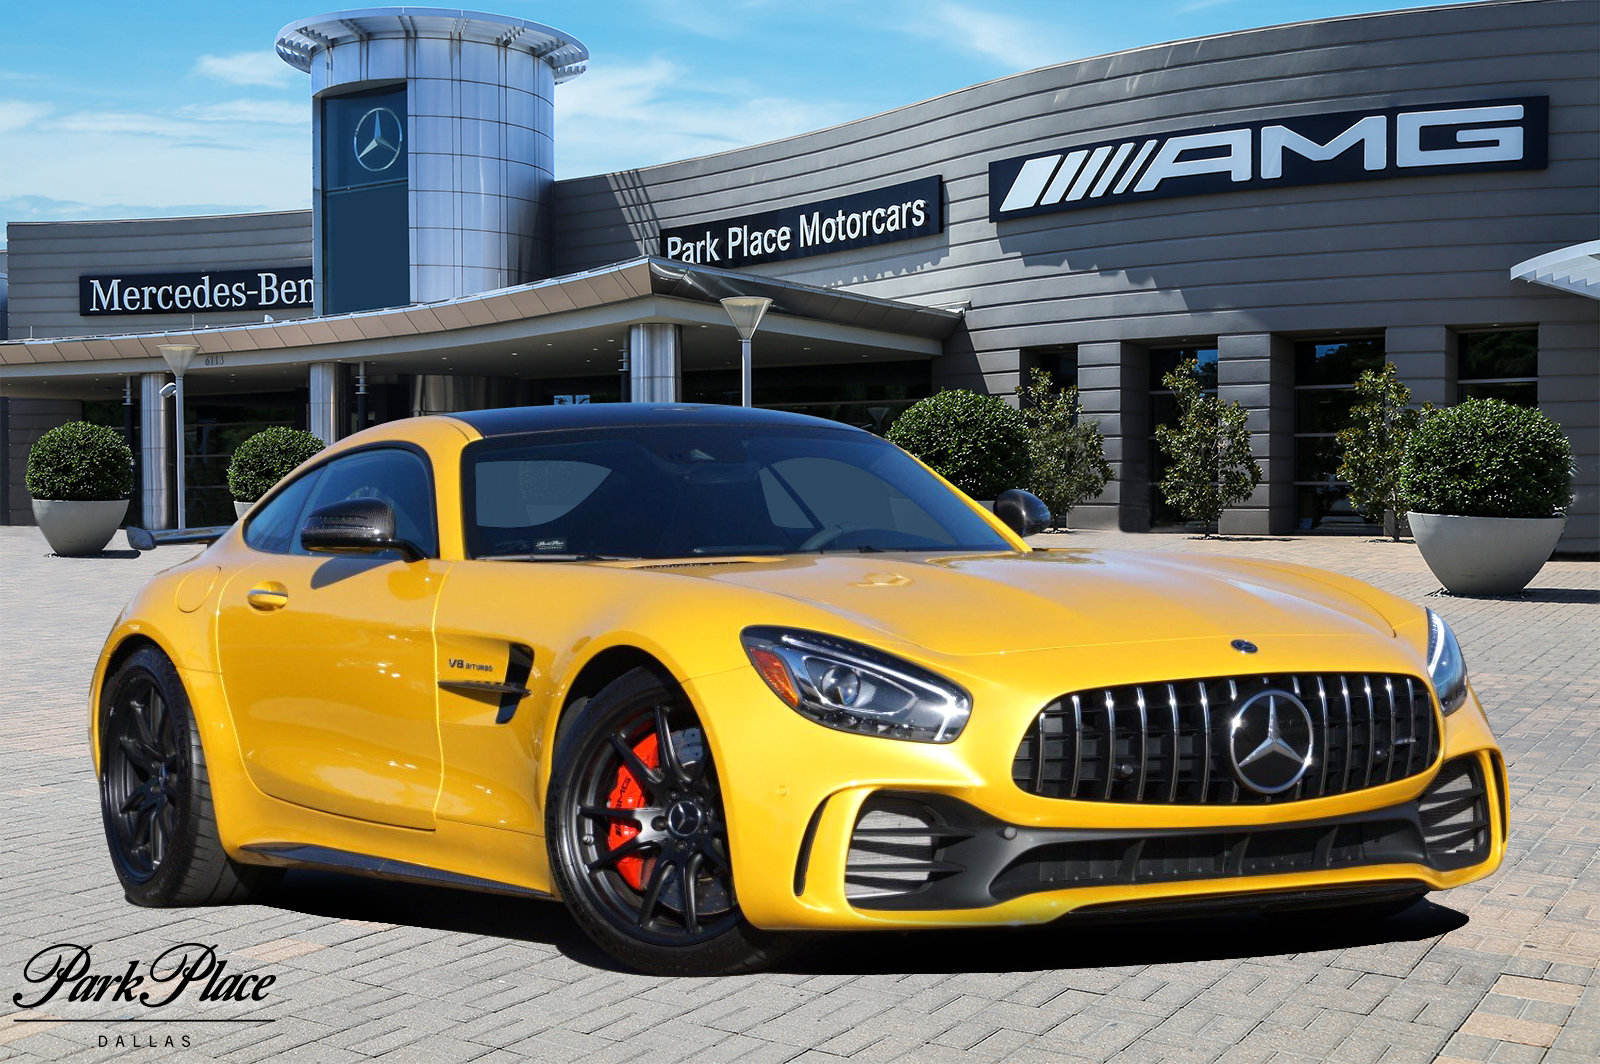 2018 Mercedes-Benz AMG GT R Coupe image